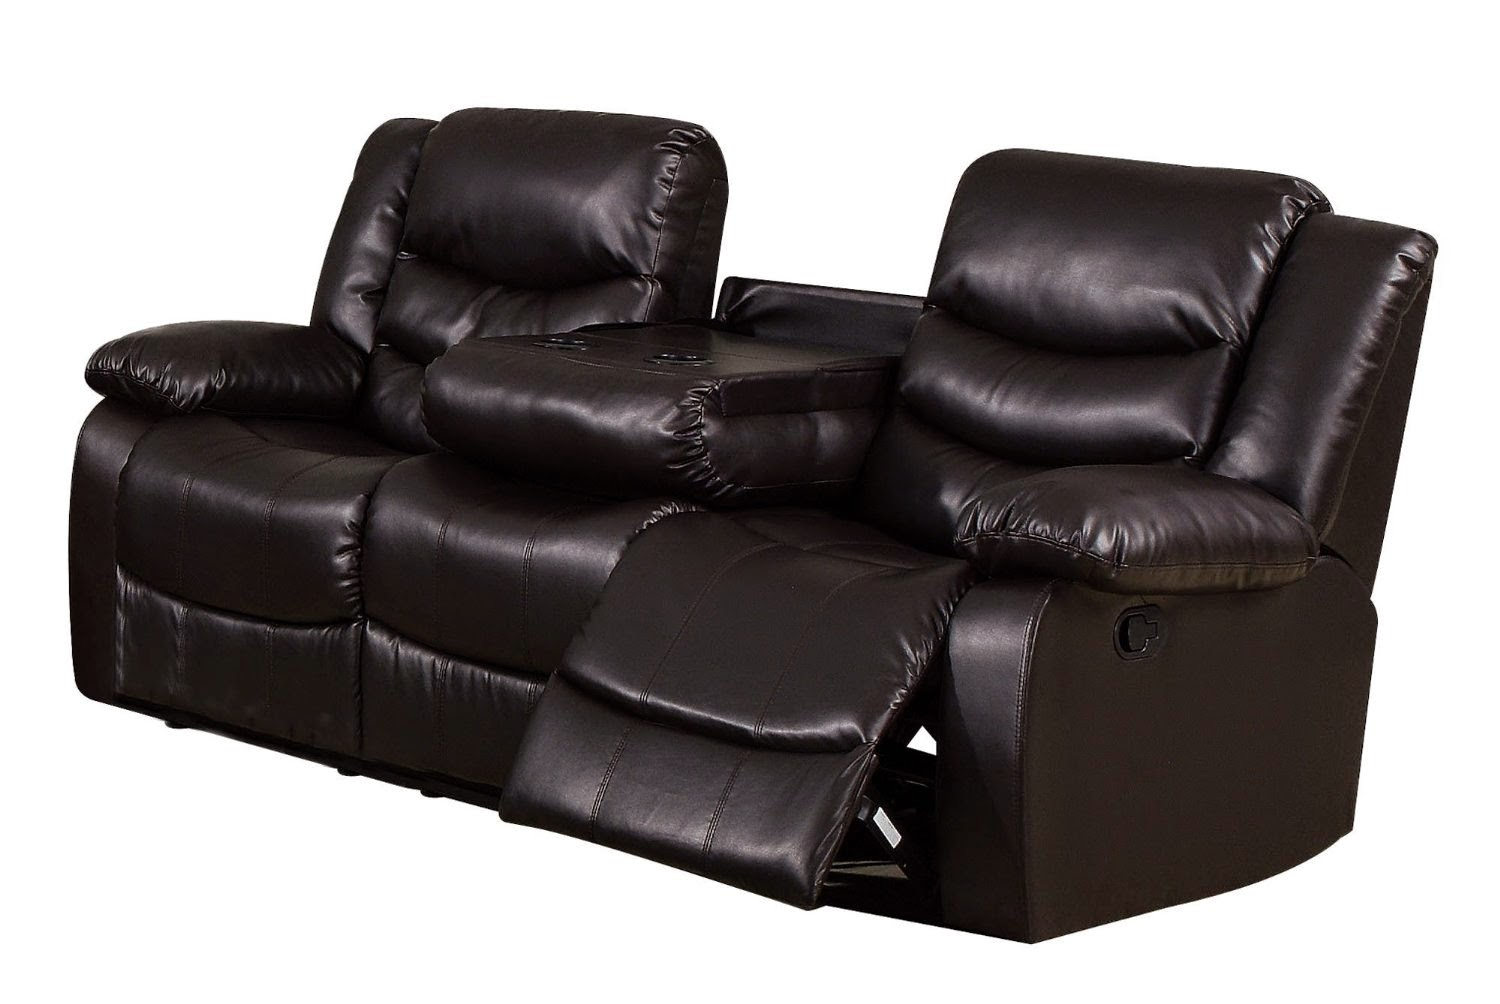 Reclining sofas for sale dual reclining sofa with drop down table Reclining loveseat sale